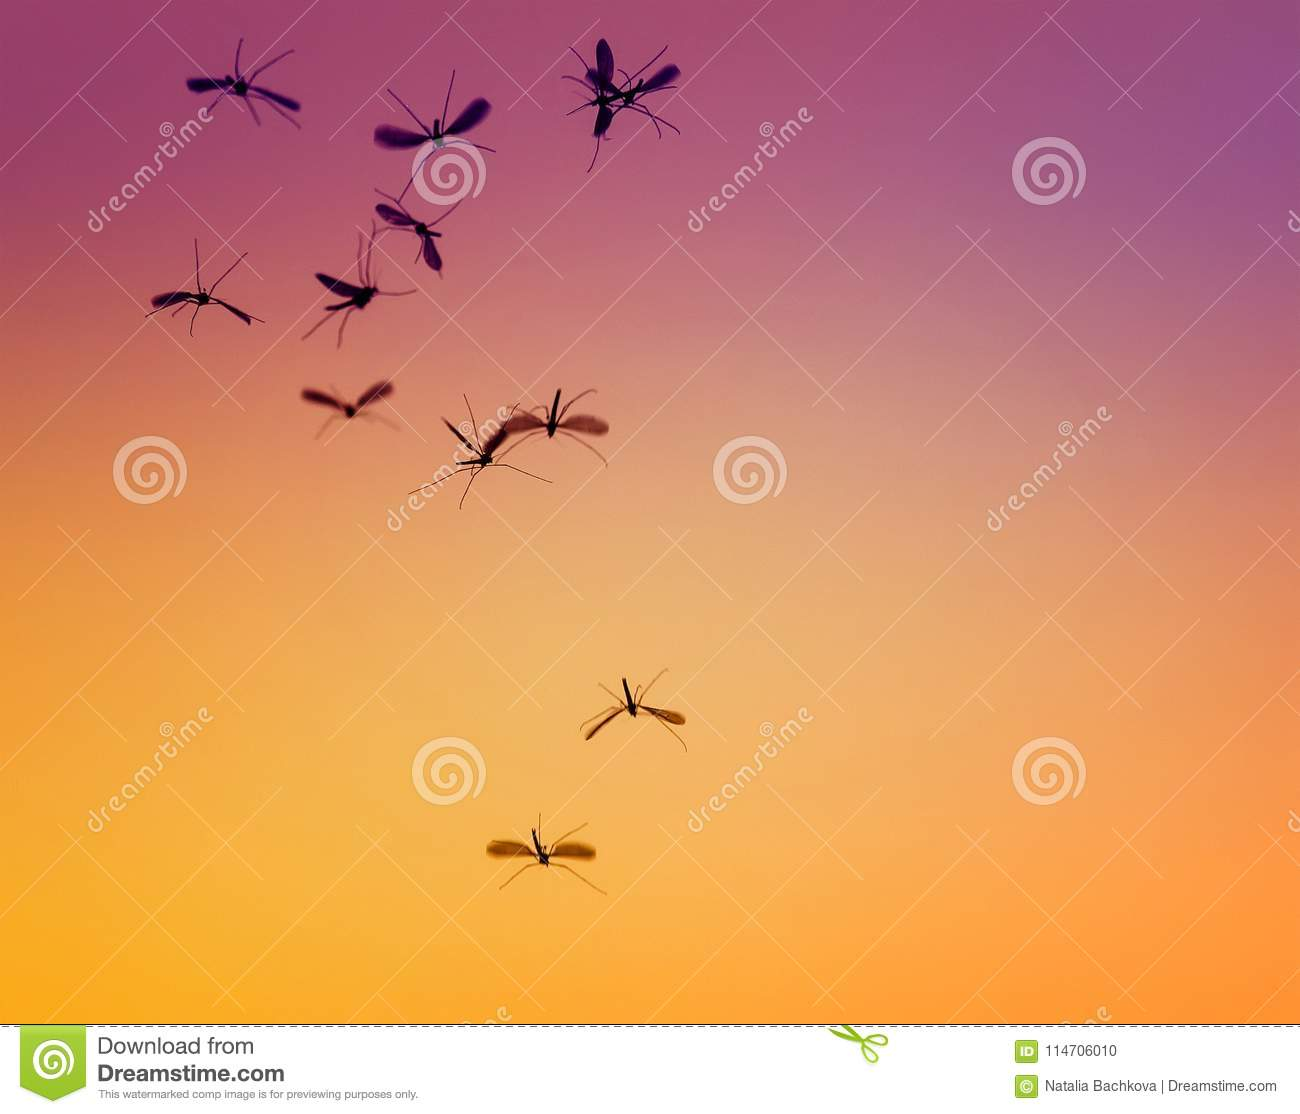 bunch of little dangerous insects mosquitoes flies against the